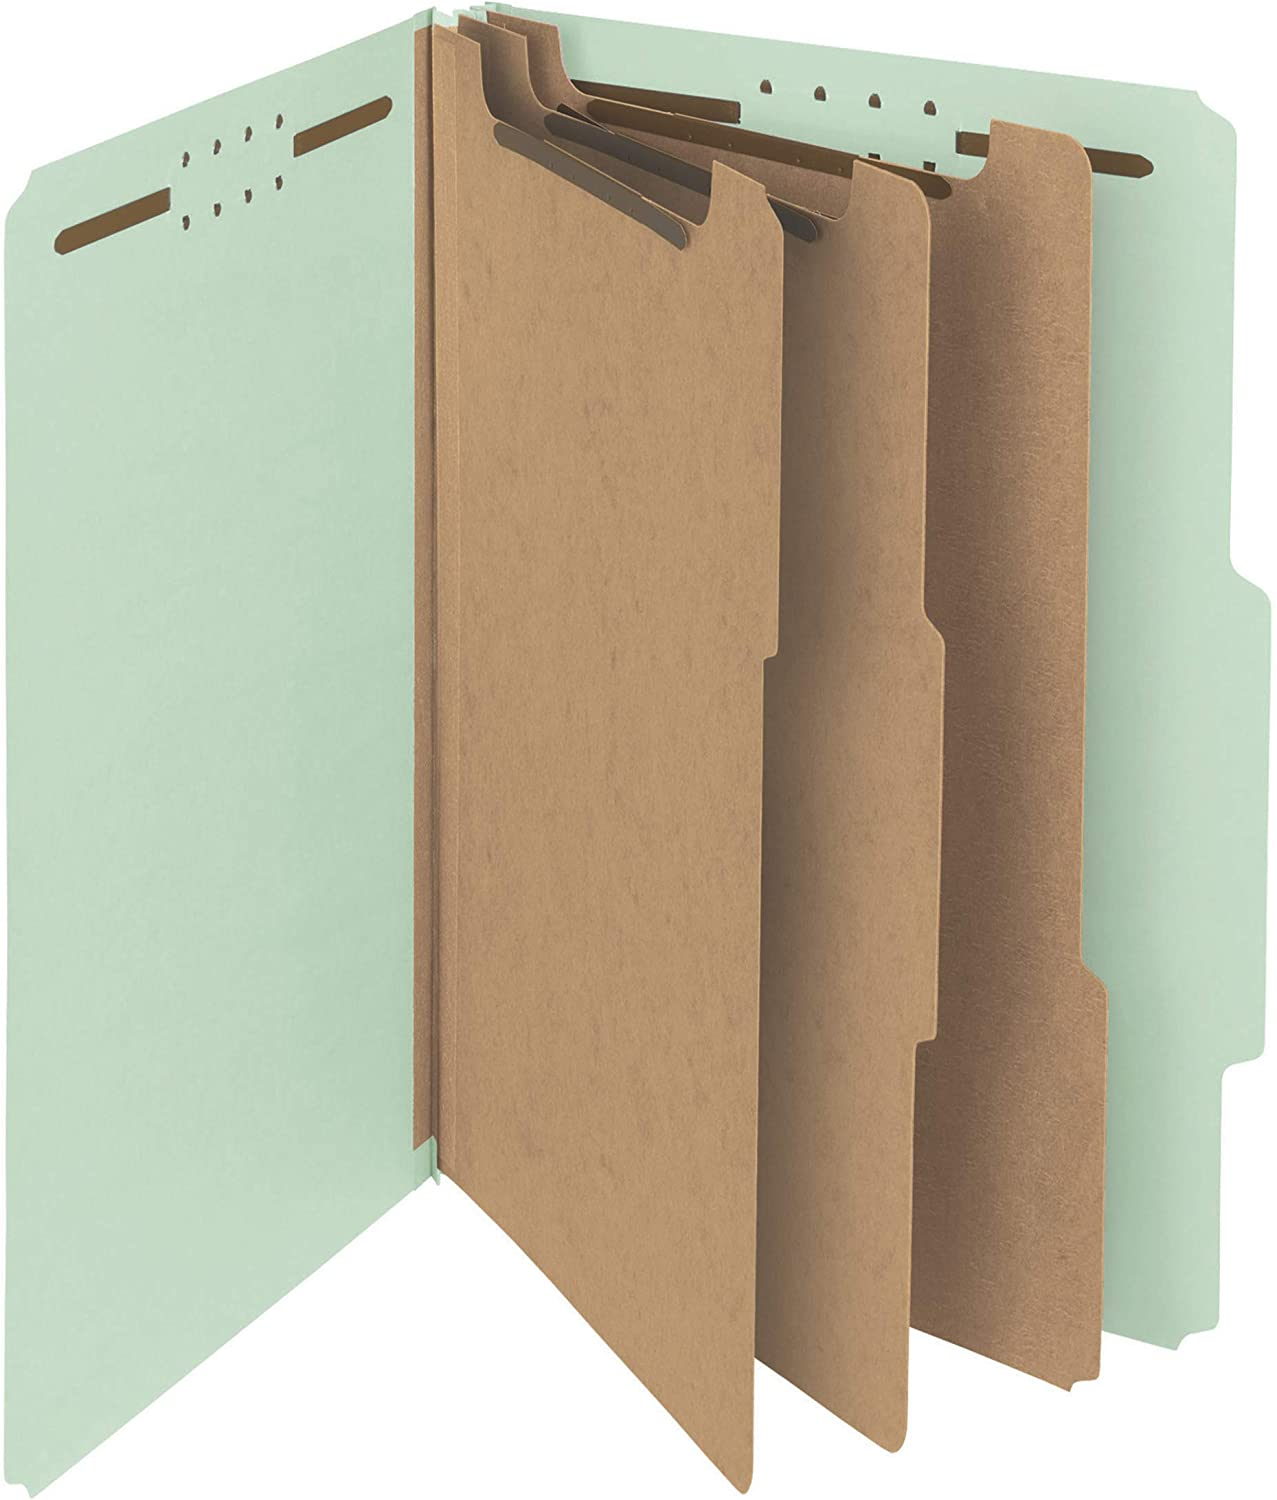 """Smead 100% Recycled Pressboard Classification File Folder, 3 Dividers, 3"""" Expansion, Legal Size, Gray/Green, 10 per Box (19093)"""